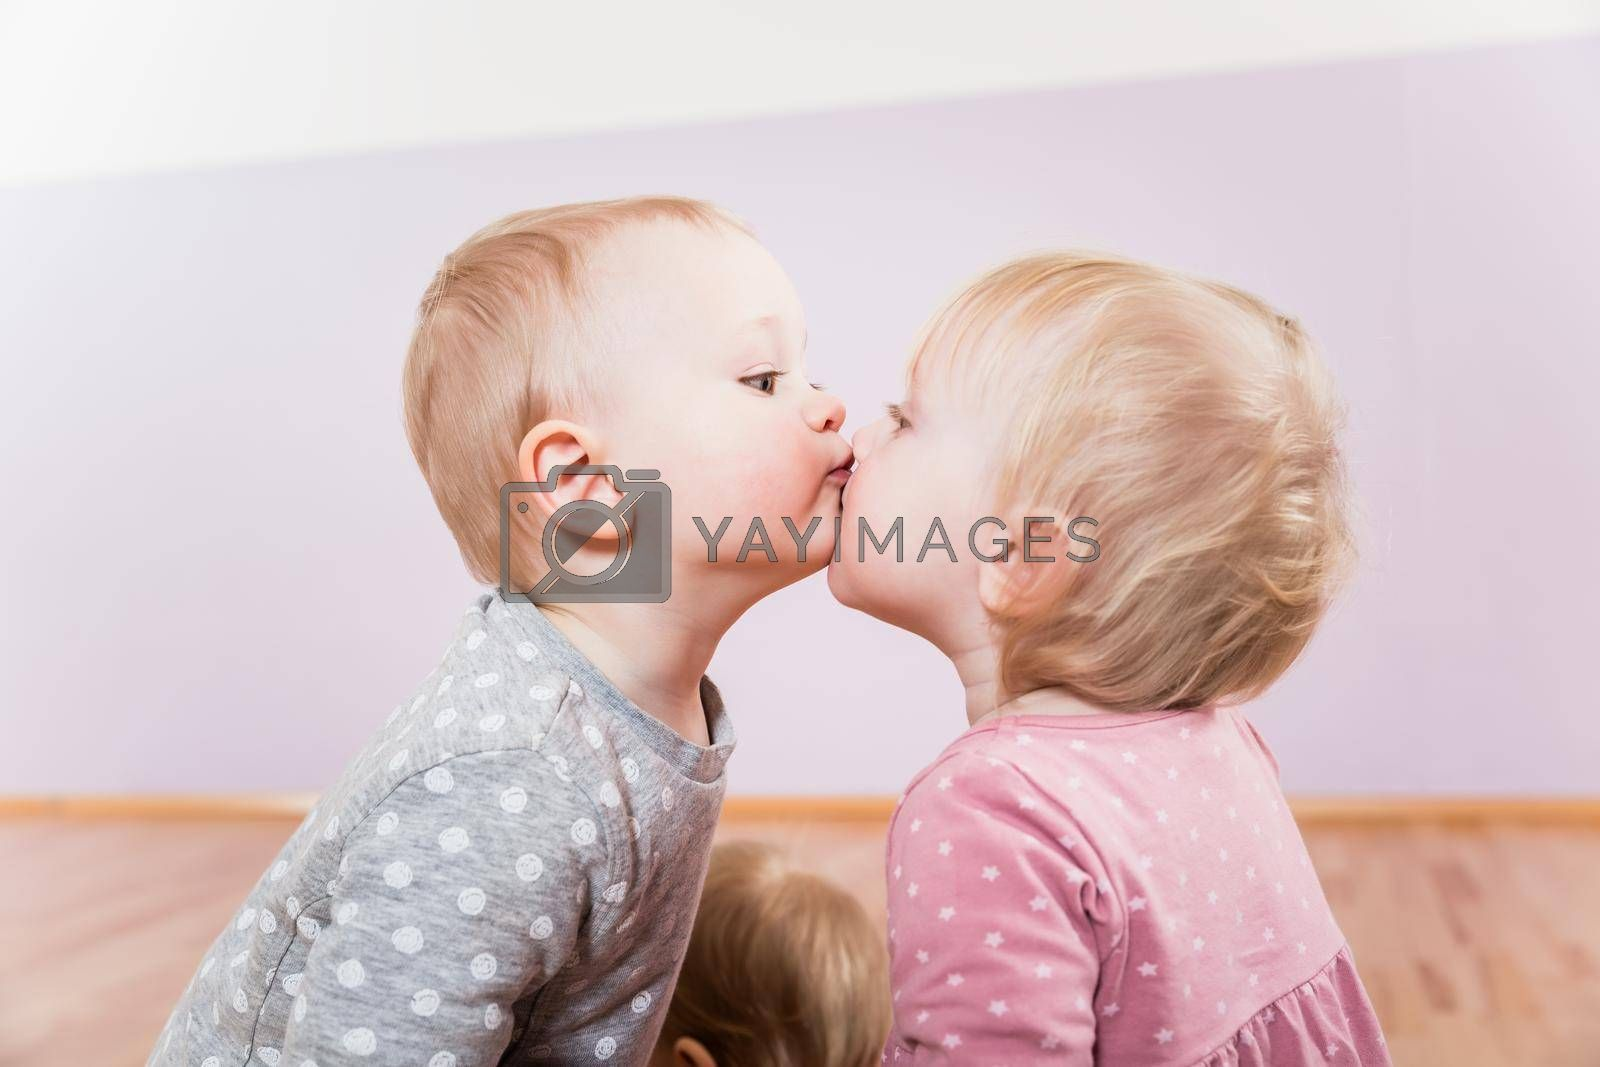 Royalty free image of Two toddlers playing with each other by Kzenon